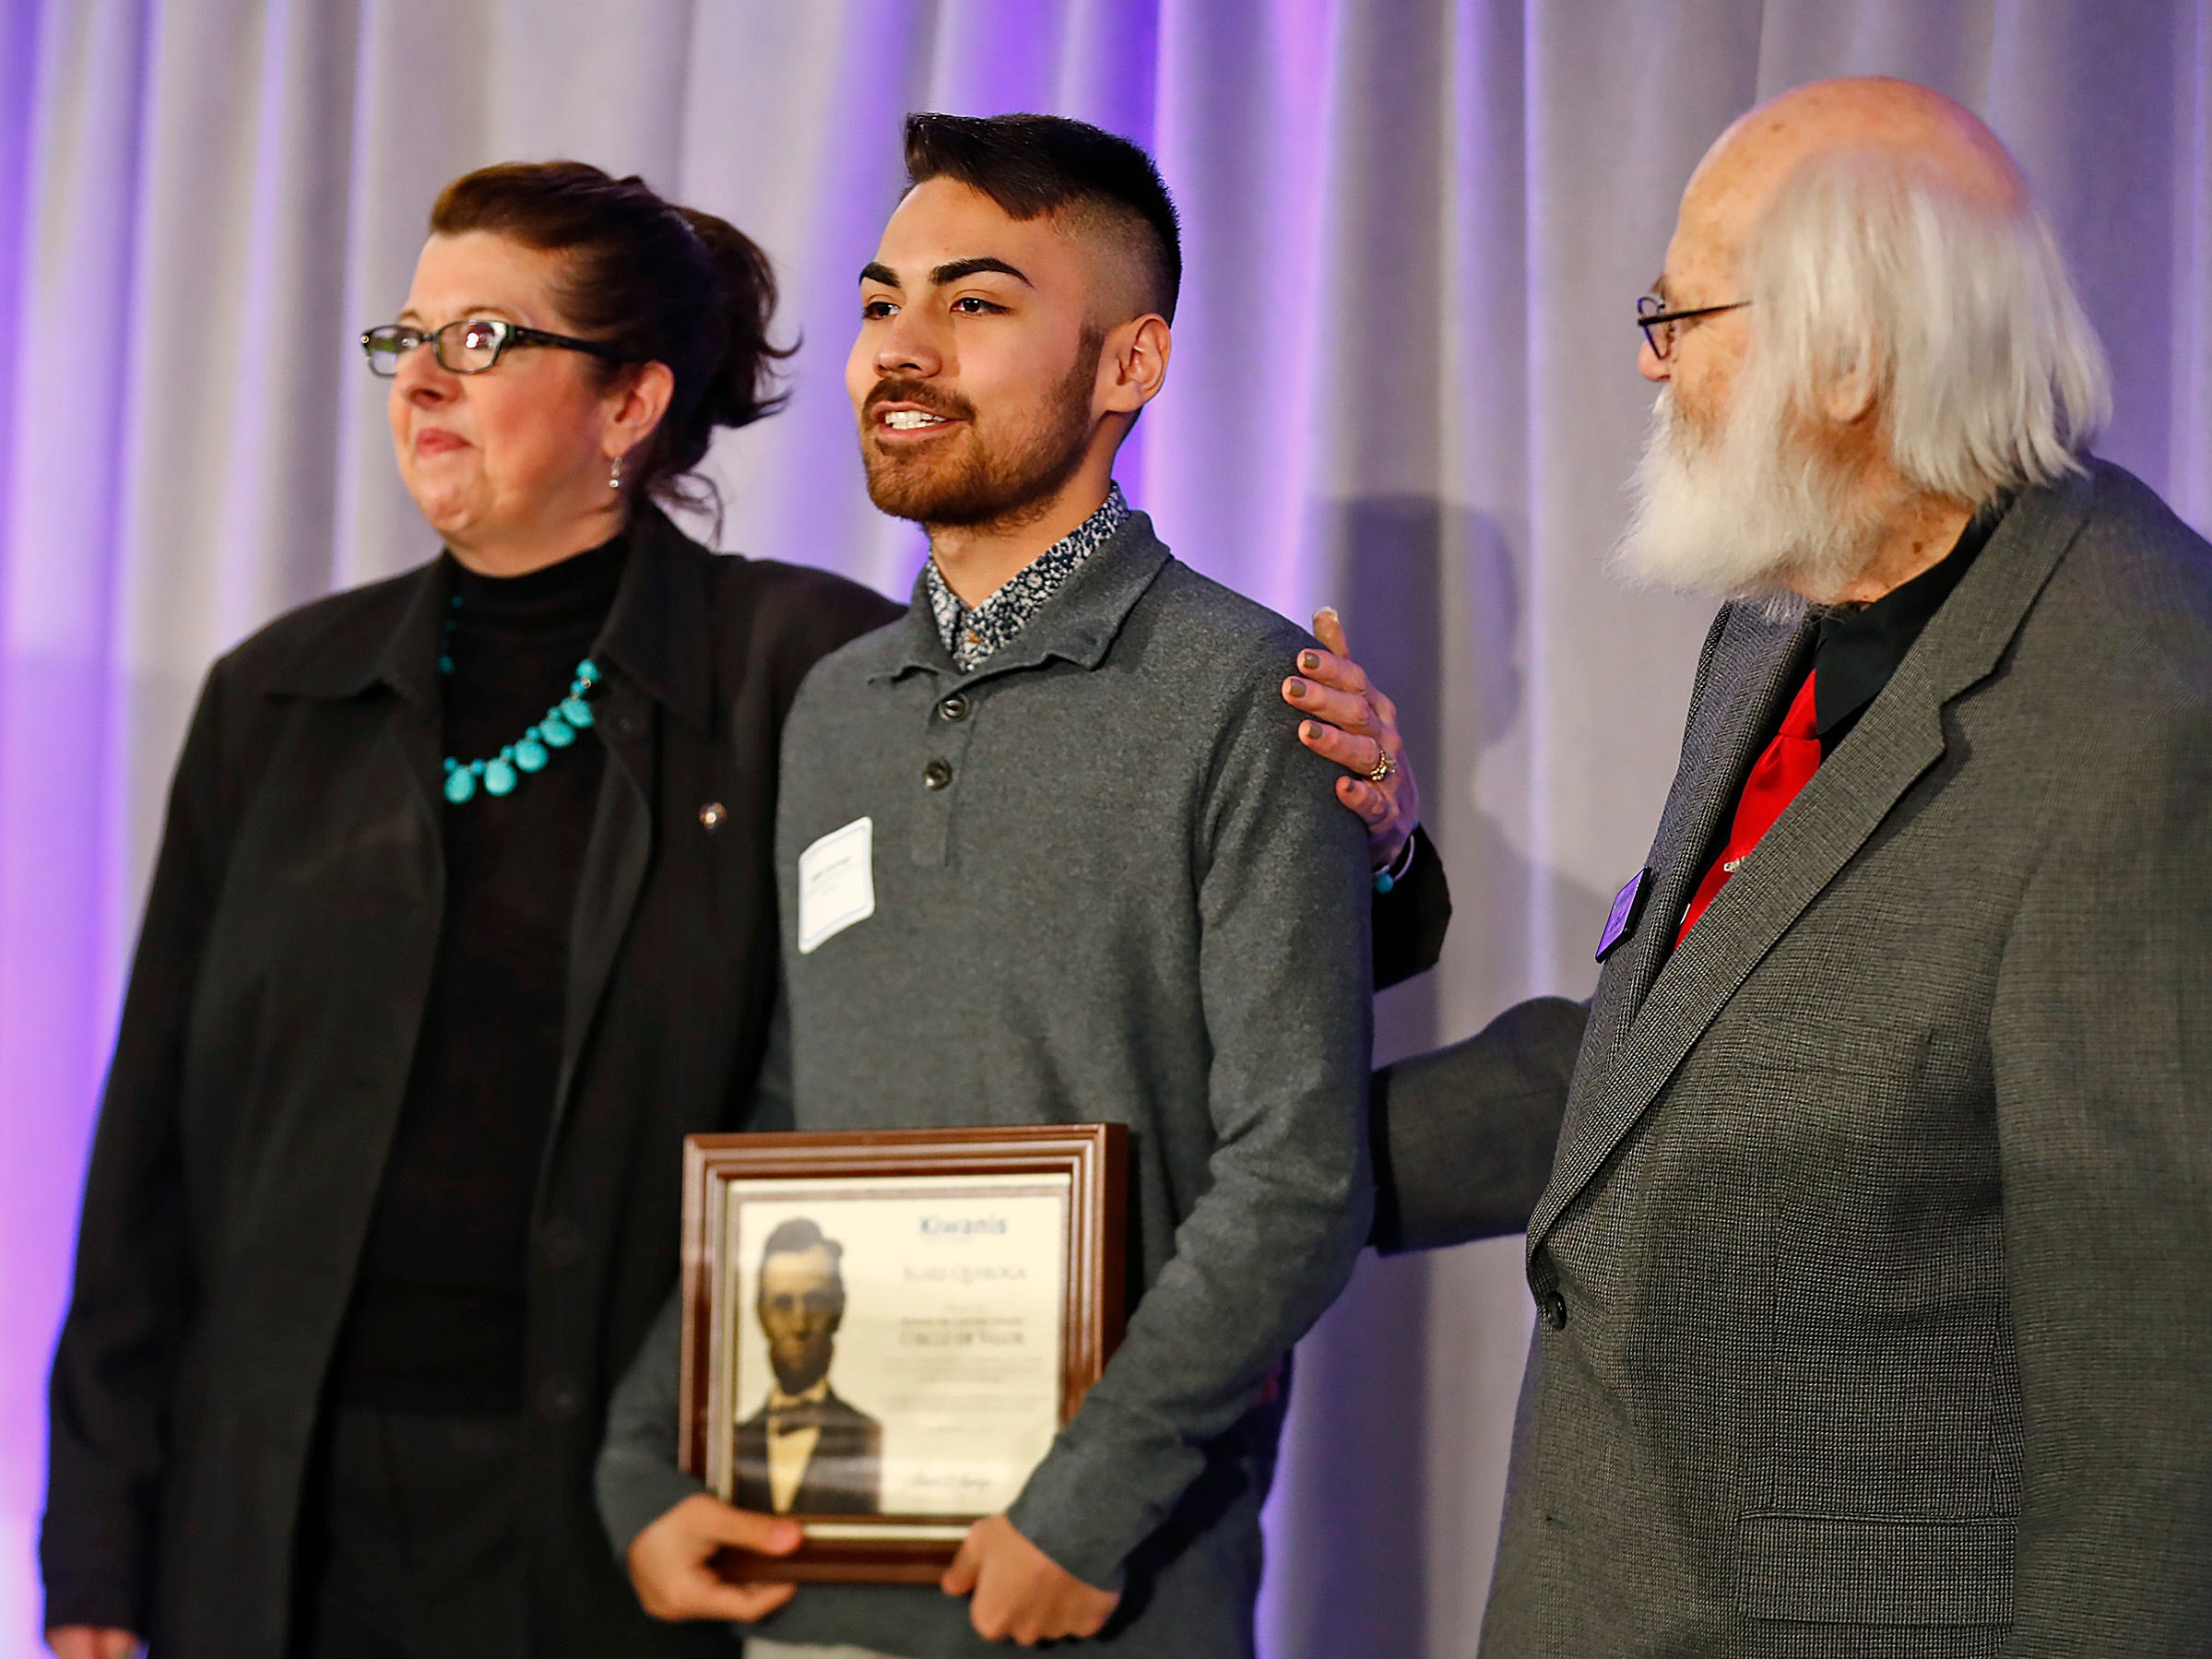 Lawrence North High School student Blake Quiroga, center, is honored with a Circle of Valor award at the 44th Annual Abe Lincoln Awards Program, Friday, Feb. 8, 2019. The Kiwanis Club of Indianapolis program was held at Ivy Tech Community College.  20 high school student were honored at the annual event which celebrates overcoming adversity in life to succeed.